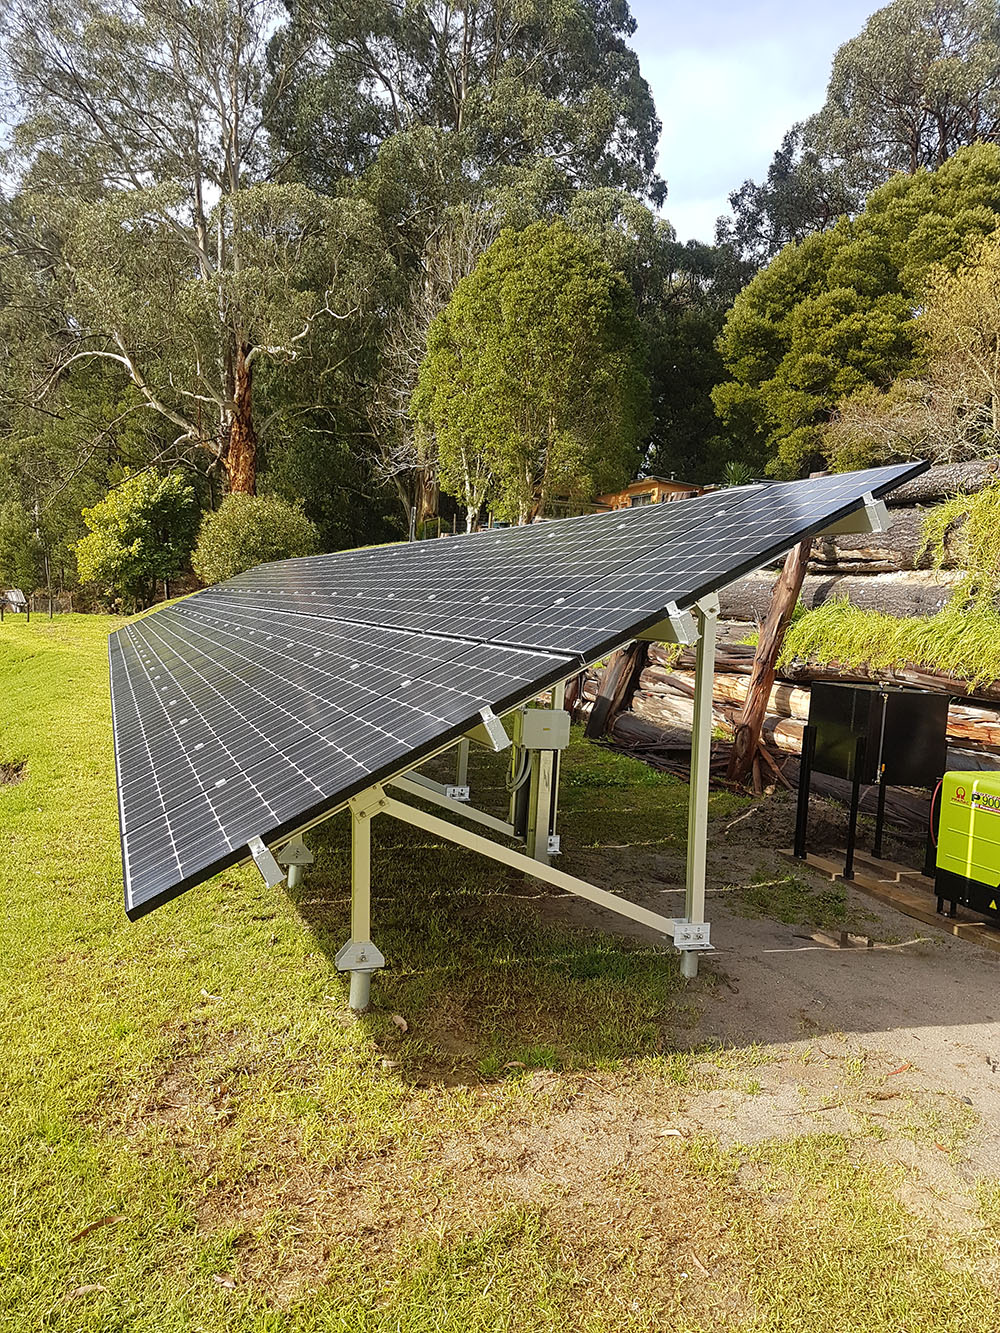 Department of Energy Land Water and Planning bushfire-proof off-grid clean power system